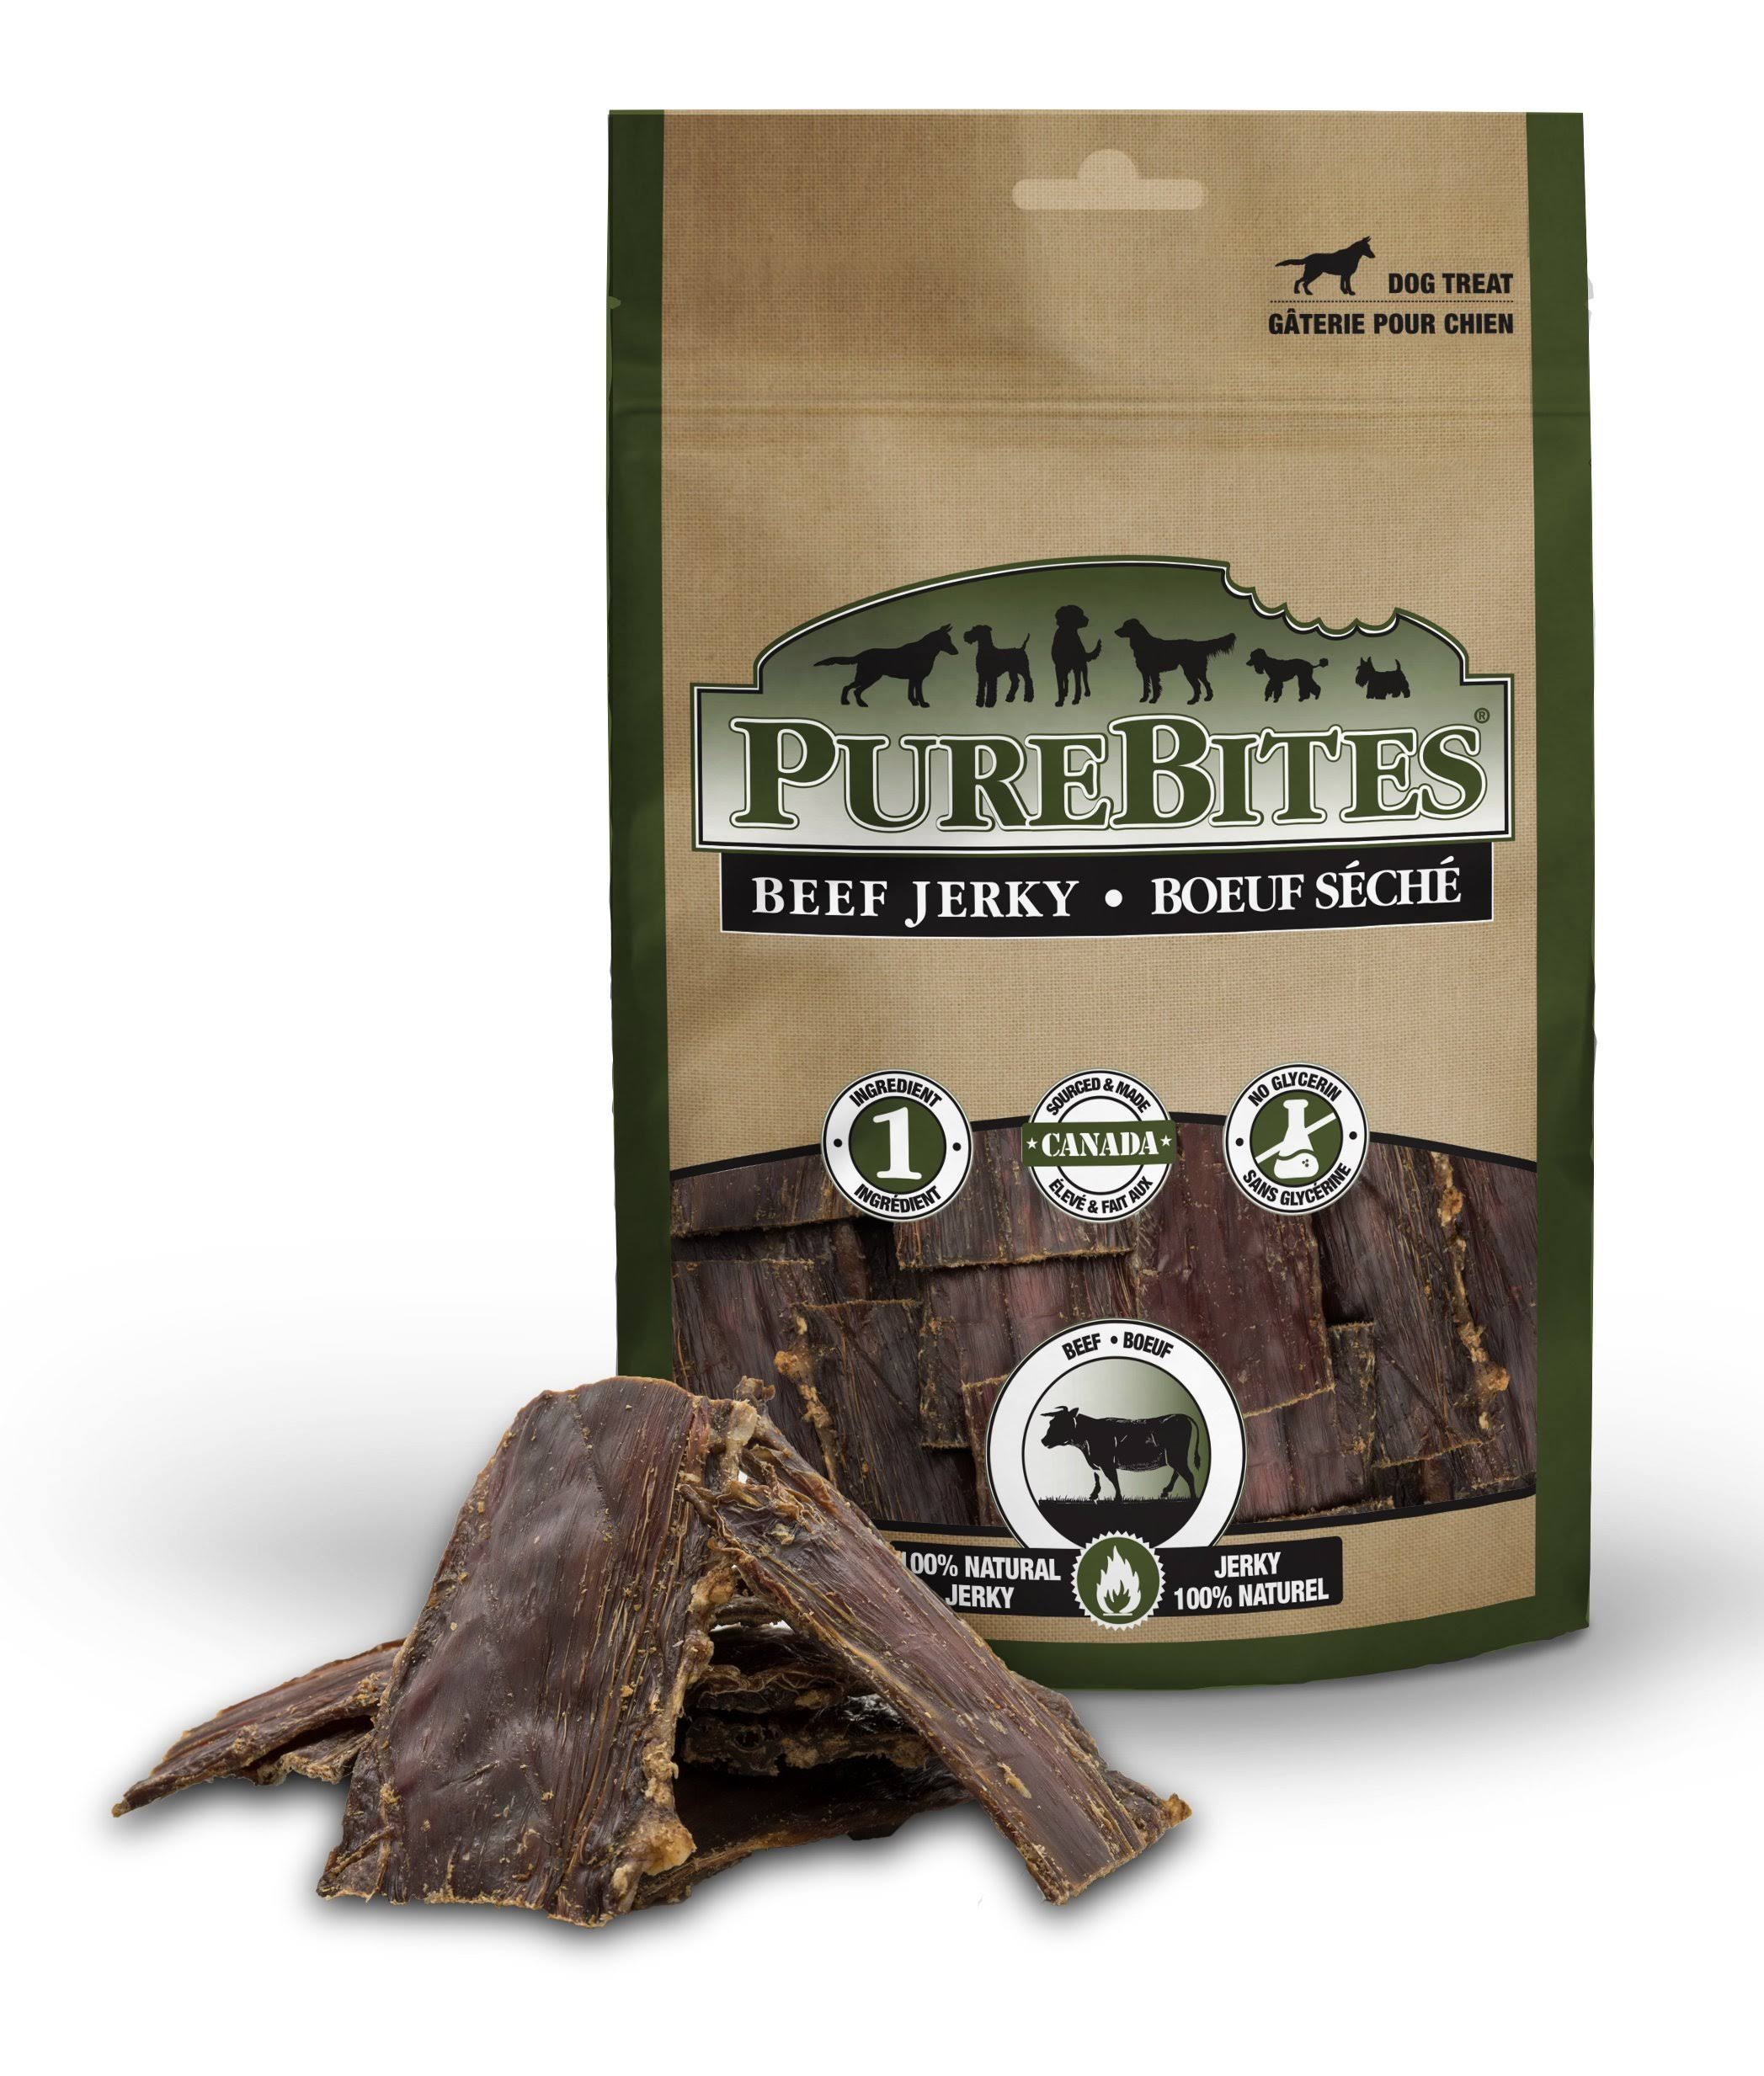 PureBites Beef Jerky Dog Treats